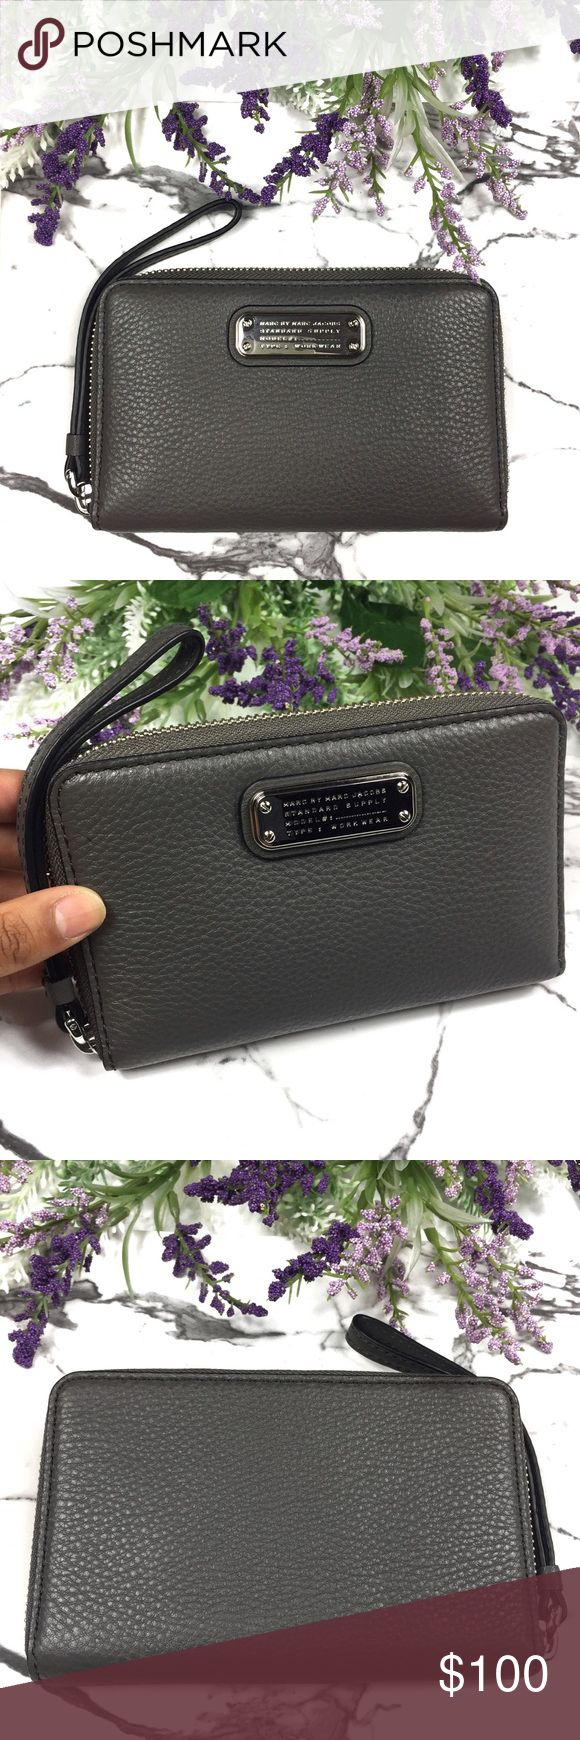 """Marc Jacobs New Q Wingman Leather Wristlet Wallet Brand NEW with tags! No signs of wear whatsoever. 100% Authentic.   MSRP: $148.00 + TAX!! 🚫TRADES **PRICE IS FIRM**  Color: Faded Aluminum  Pebbled Leather Model No: M0009418 Zip Around Wallet/Wristlet Sliver tone hardware Interior: Leather lining 1 open phone pocket,5 card slots, 1 clear ID slot, 1 zip pocket, 2 slip pockets Wrist strap zip pull Measurement:  4"""" x 6.25"""" x 0.75"""" Marc Jacobs Bags Clutches & Wristlets"""